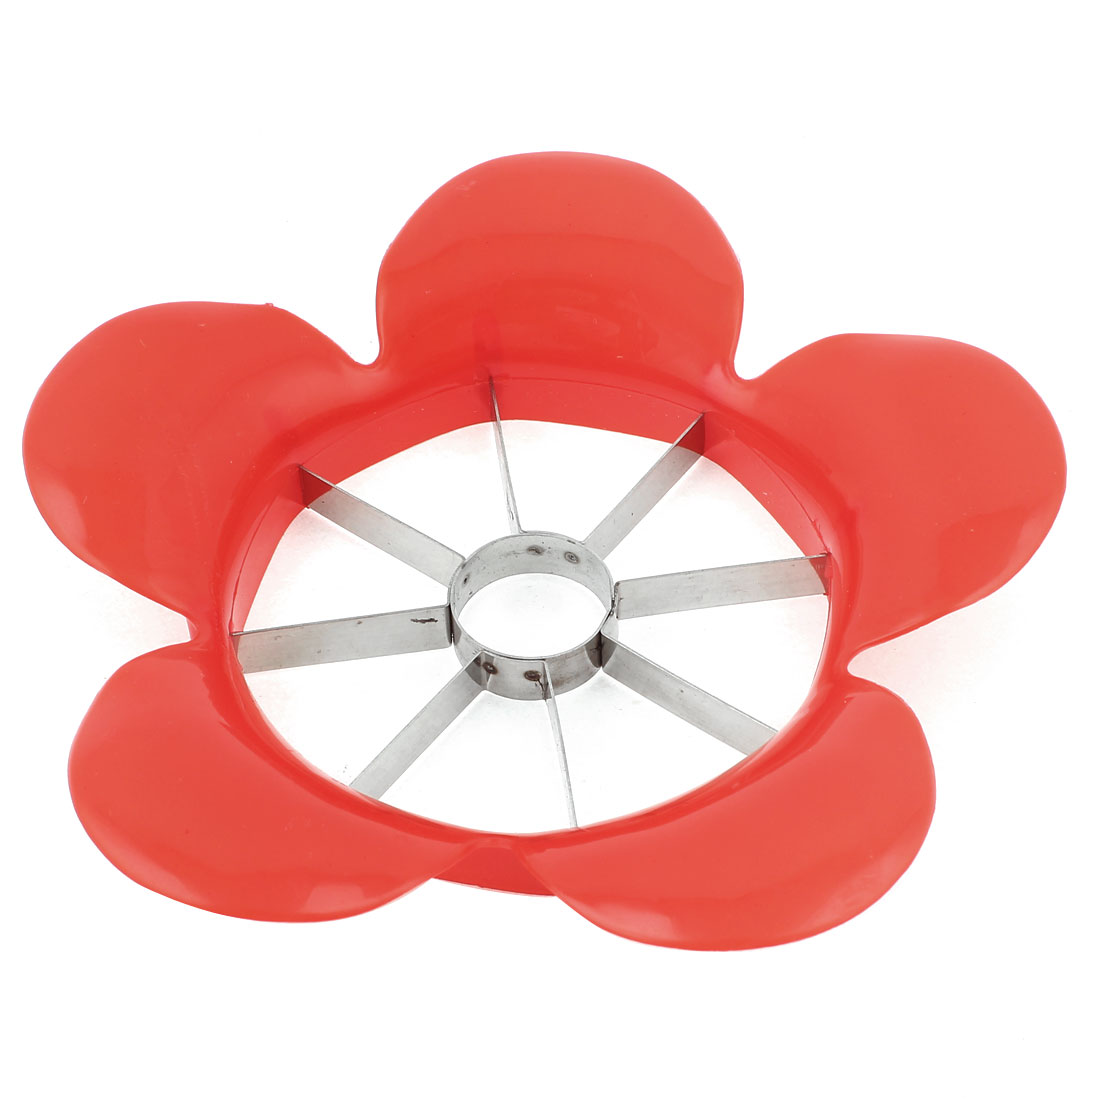 Kitchenware Stainless Steel Red Flower Shaped Fruit Apple Slicer Cutter Cutting Tool